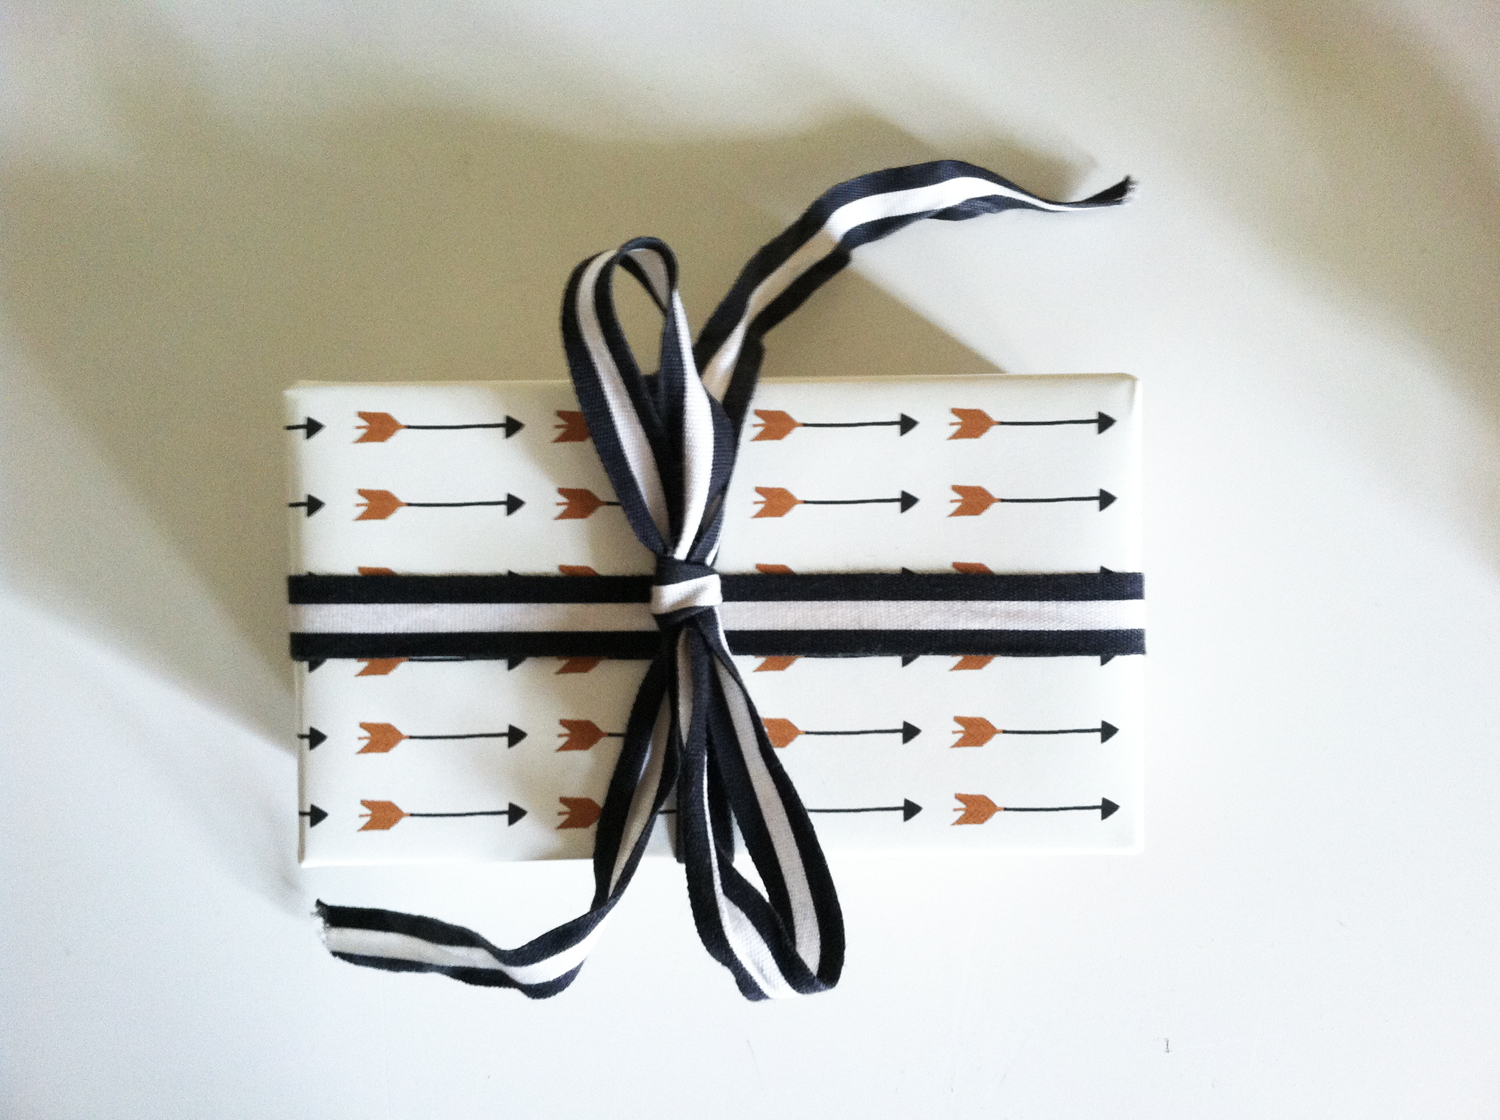 Falling Arrows Gift Wrap. Copyright Kathryn Zaremba 2013